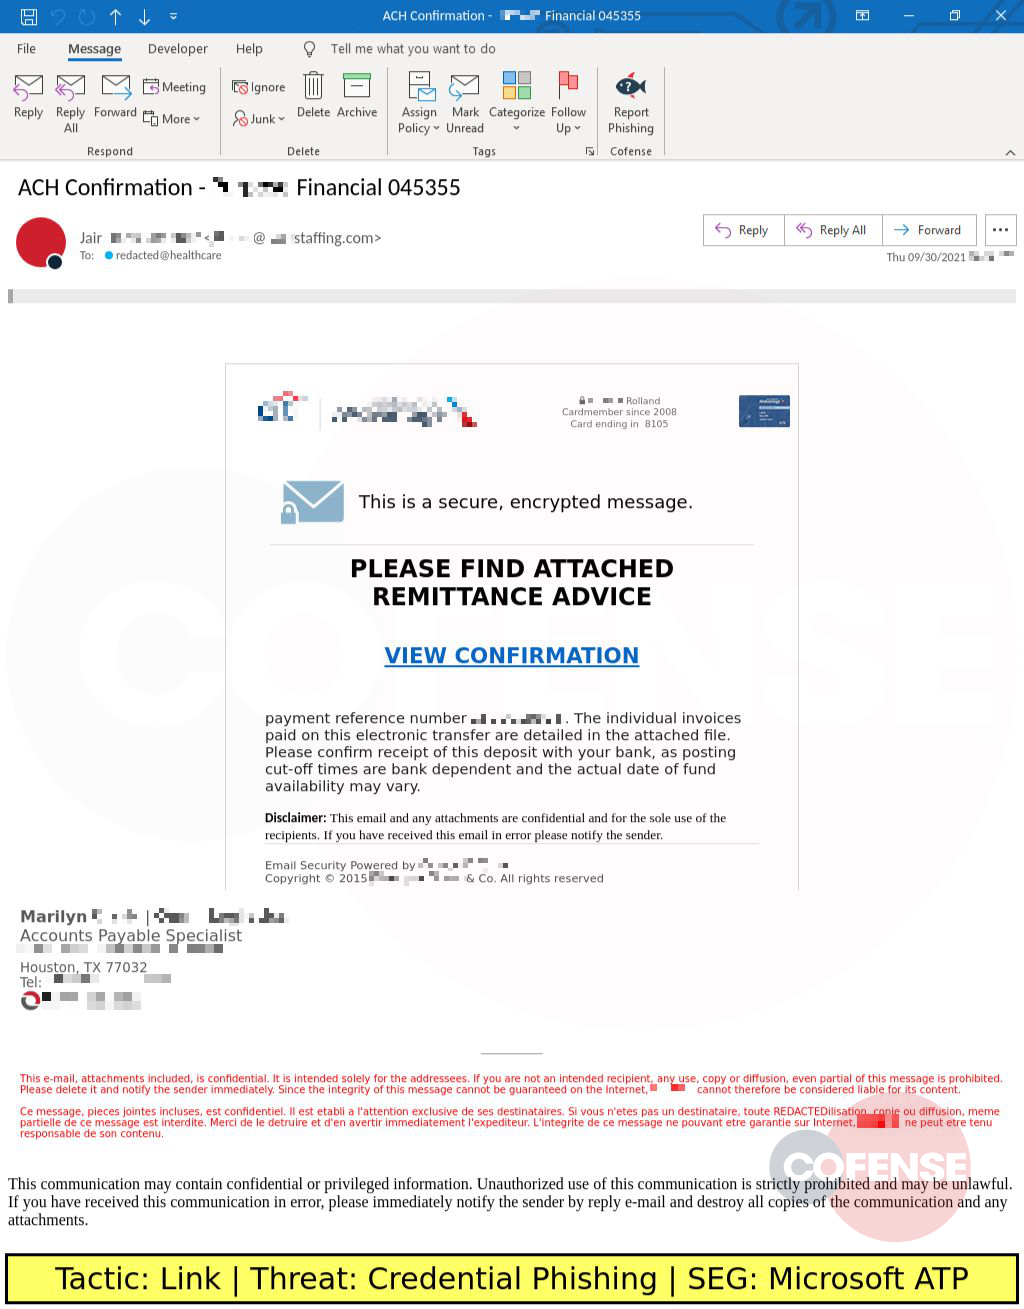 Real Phishing Example: Finance-themed emails found in environments protected by Microsoft ATP deliver Credential Phishing via an embedded link.